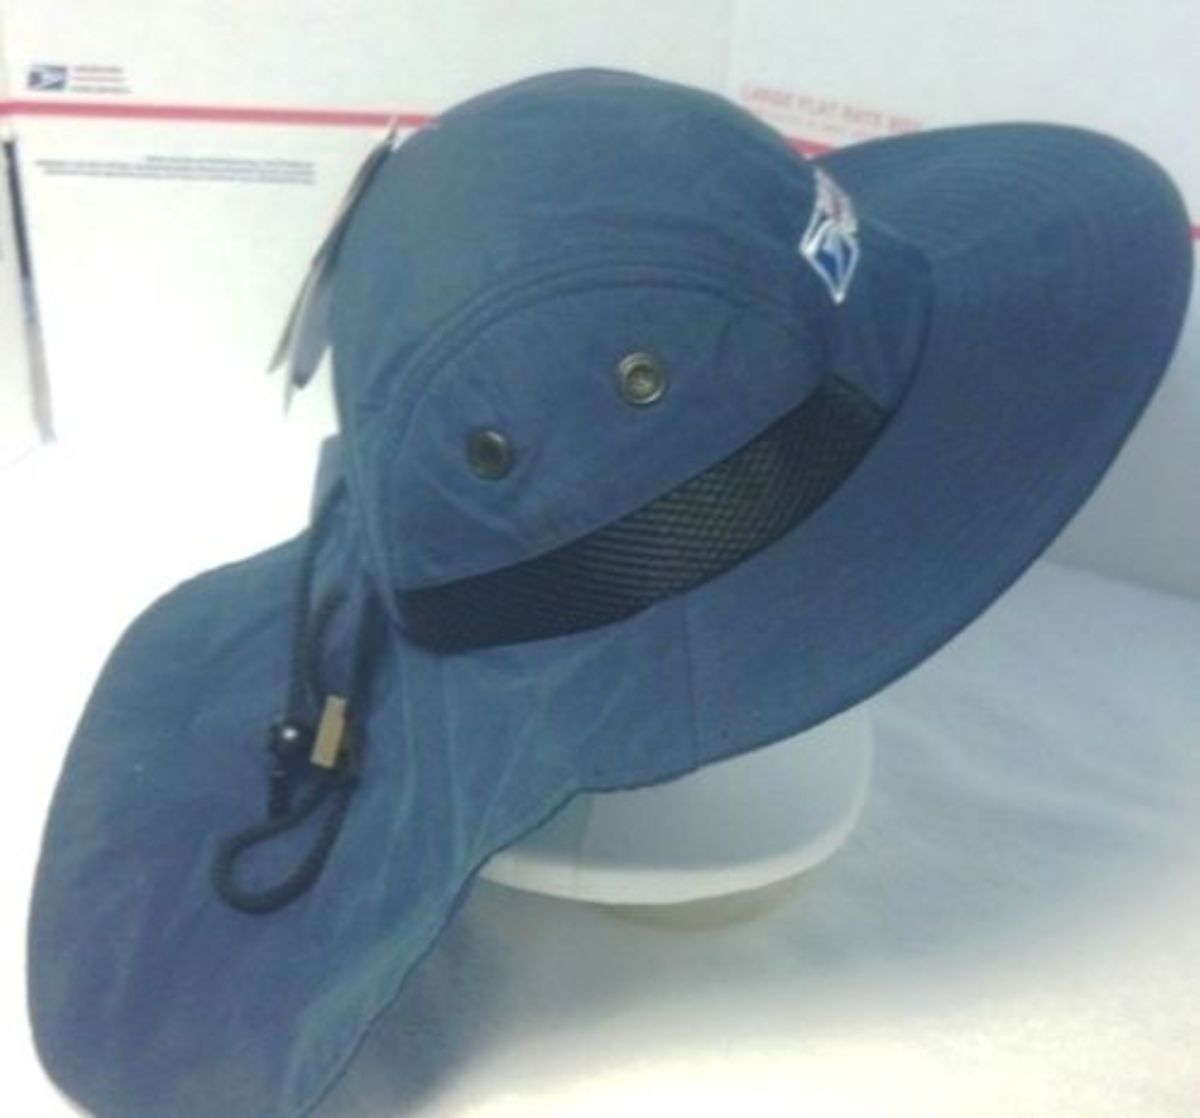 This is one of the best hats you can get as a CCA. It keeps your face out of the sun and cools your neck. It even has a small zippered pocket to store an ice pack or other small items.